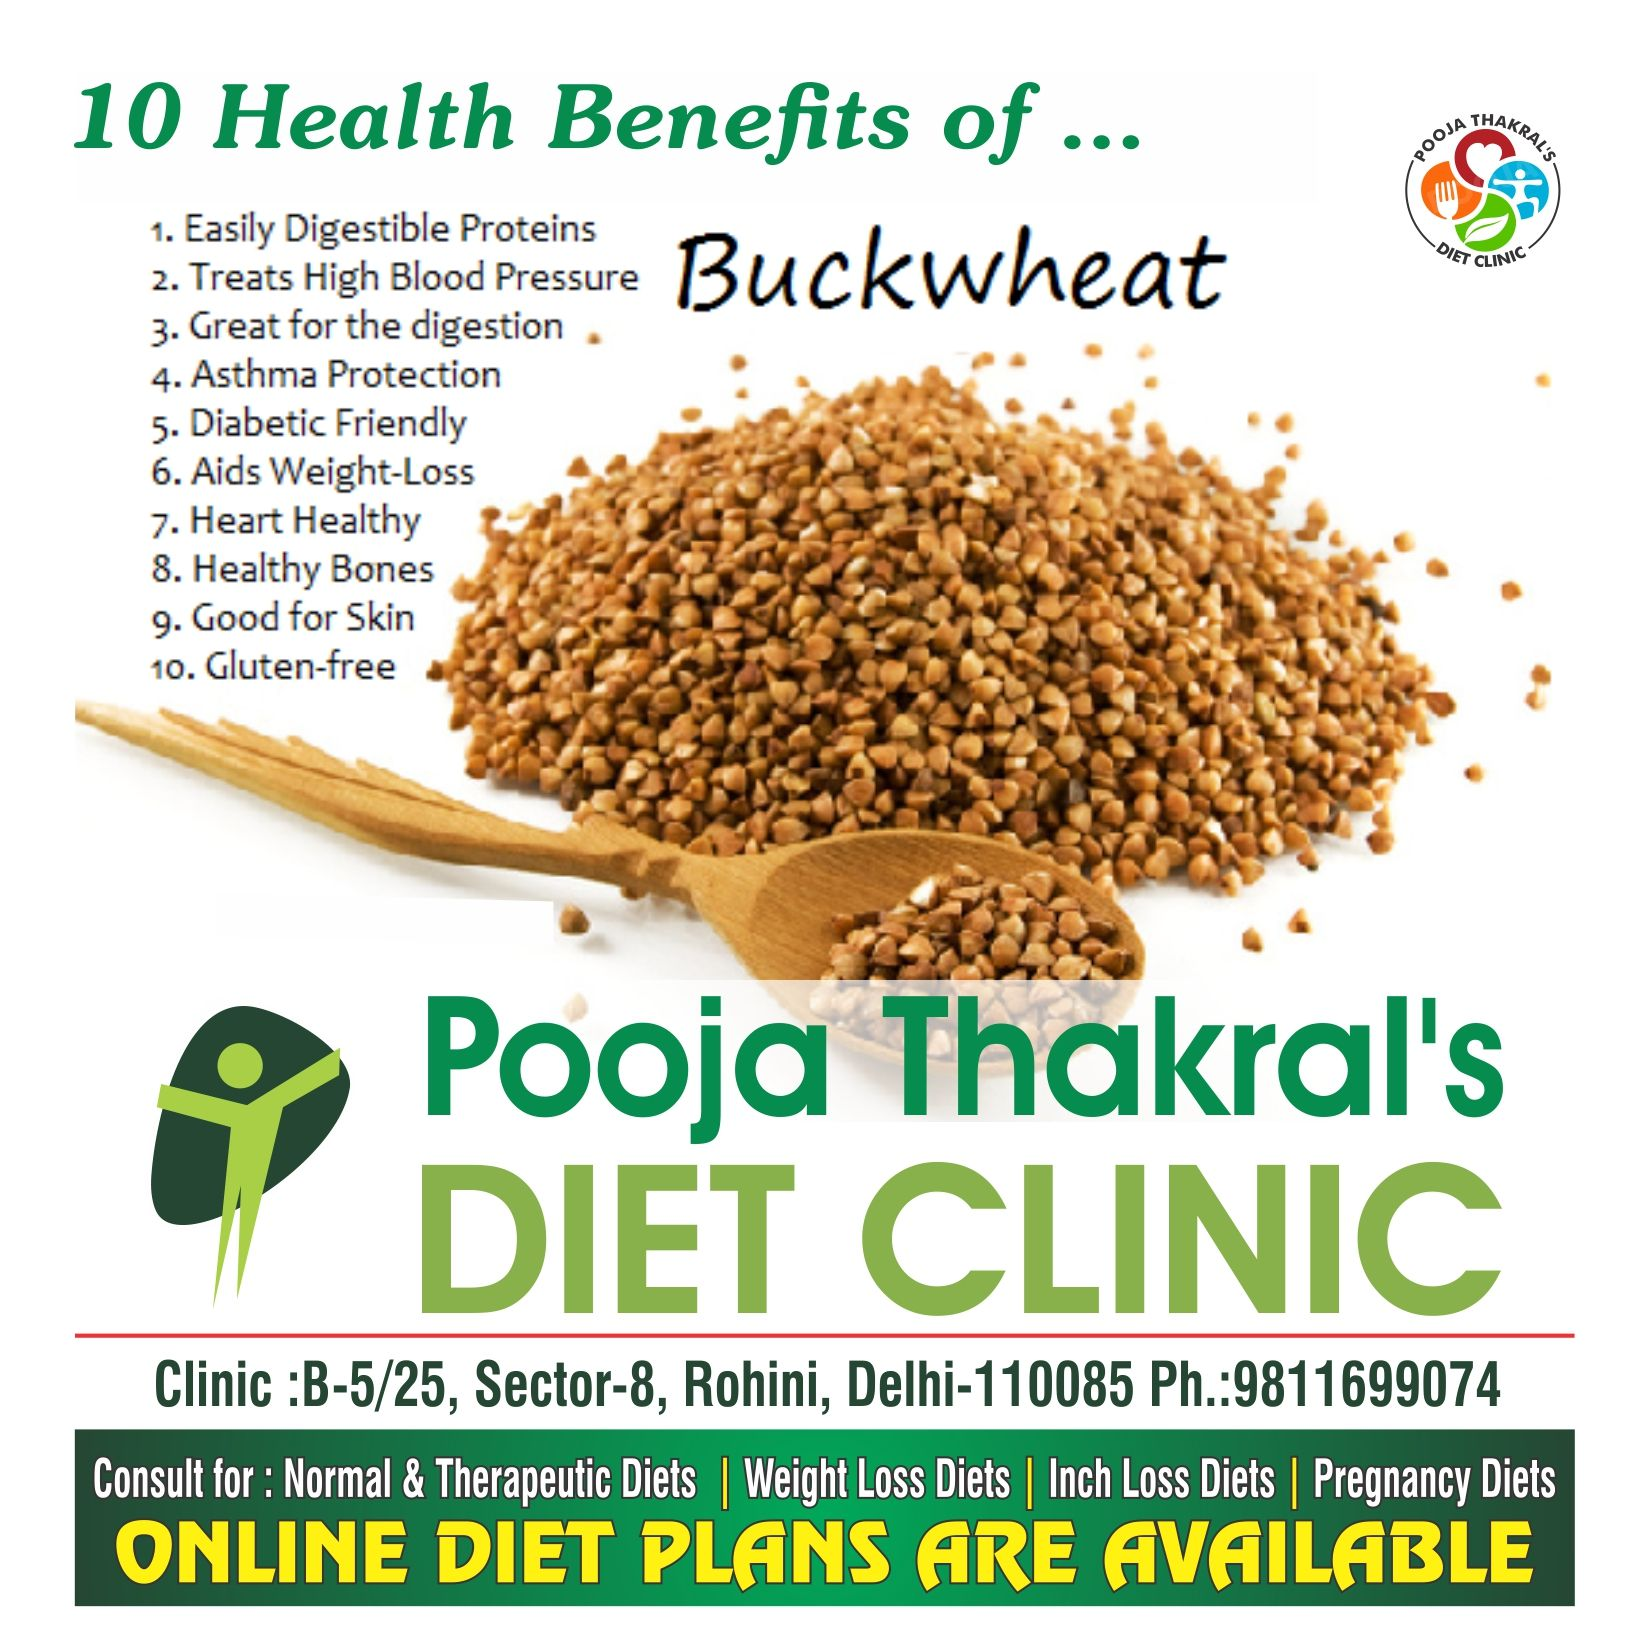 10 Health Benefits Of Buckwheat By Dt Pooja Thakral In 2020 Nutrition Recipes Health Healthy Bones